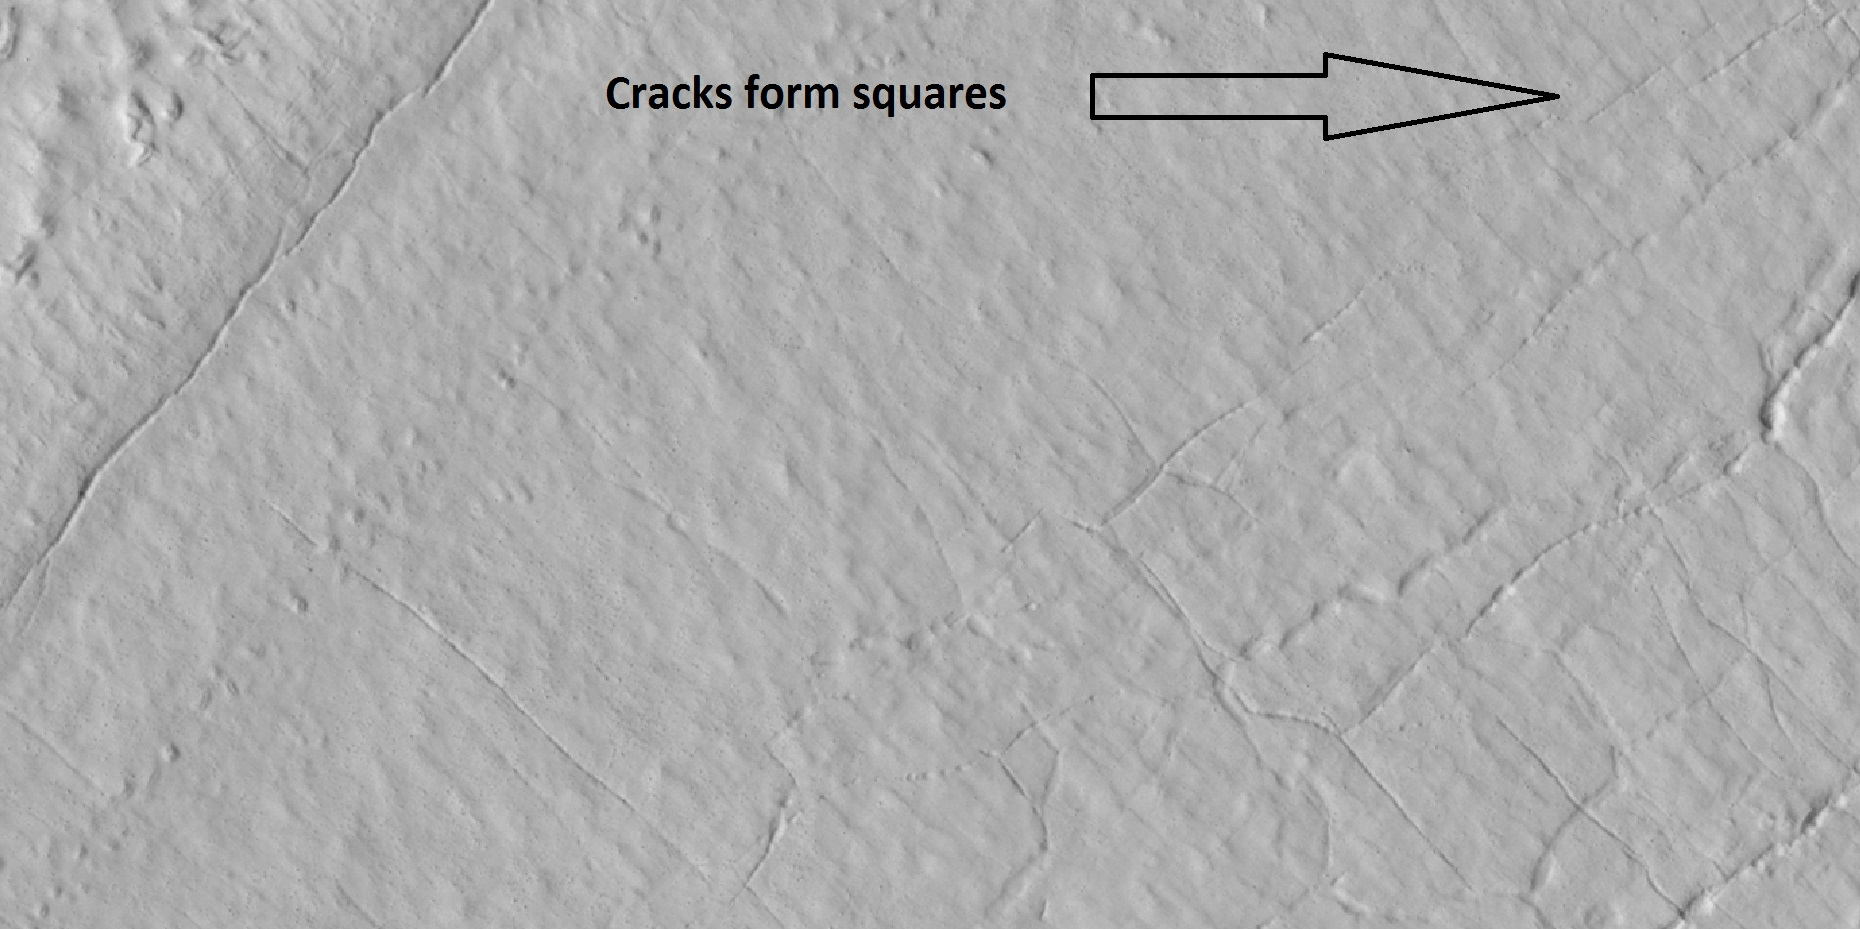 Cracks and pits that form square shapes Arrow points to squares formed by cracks.